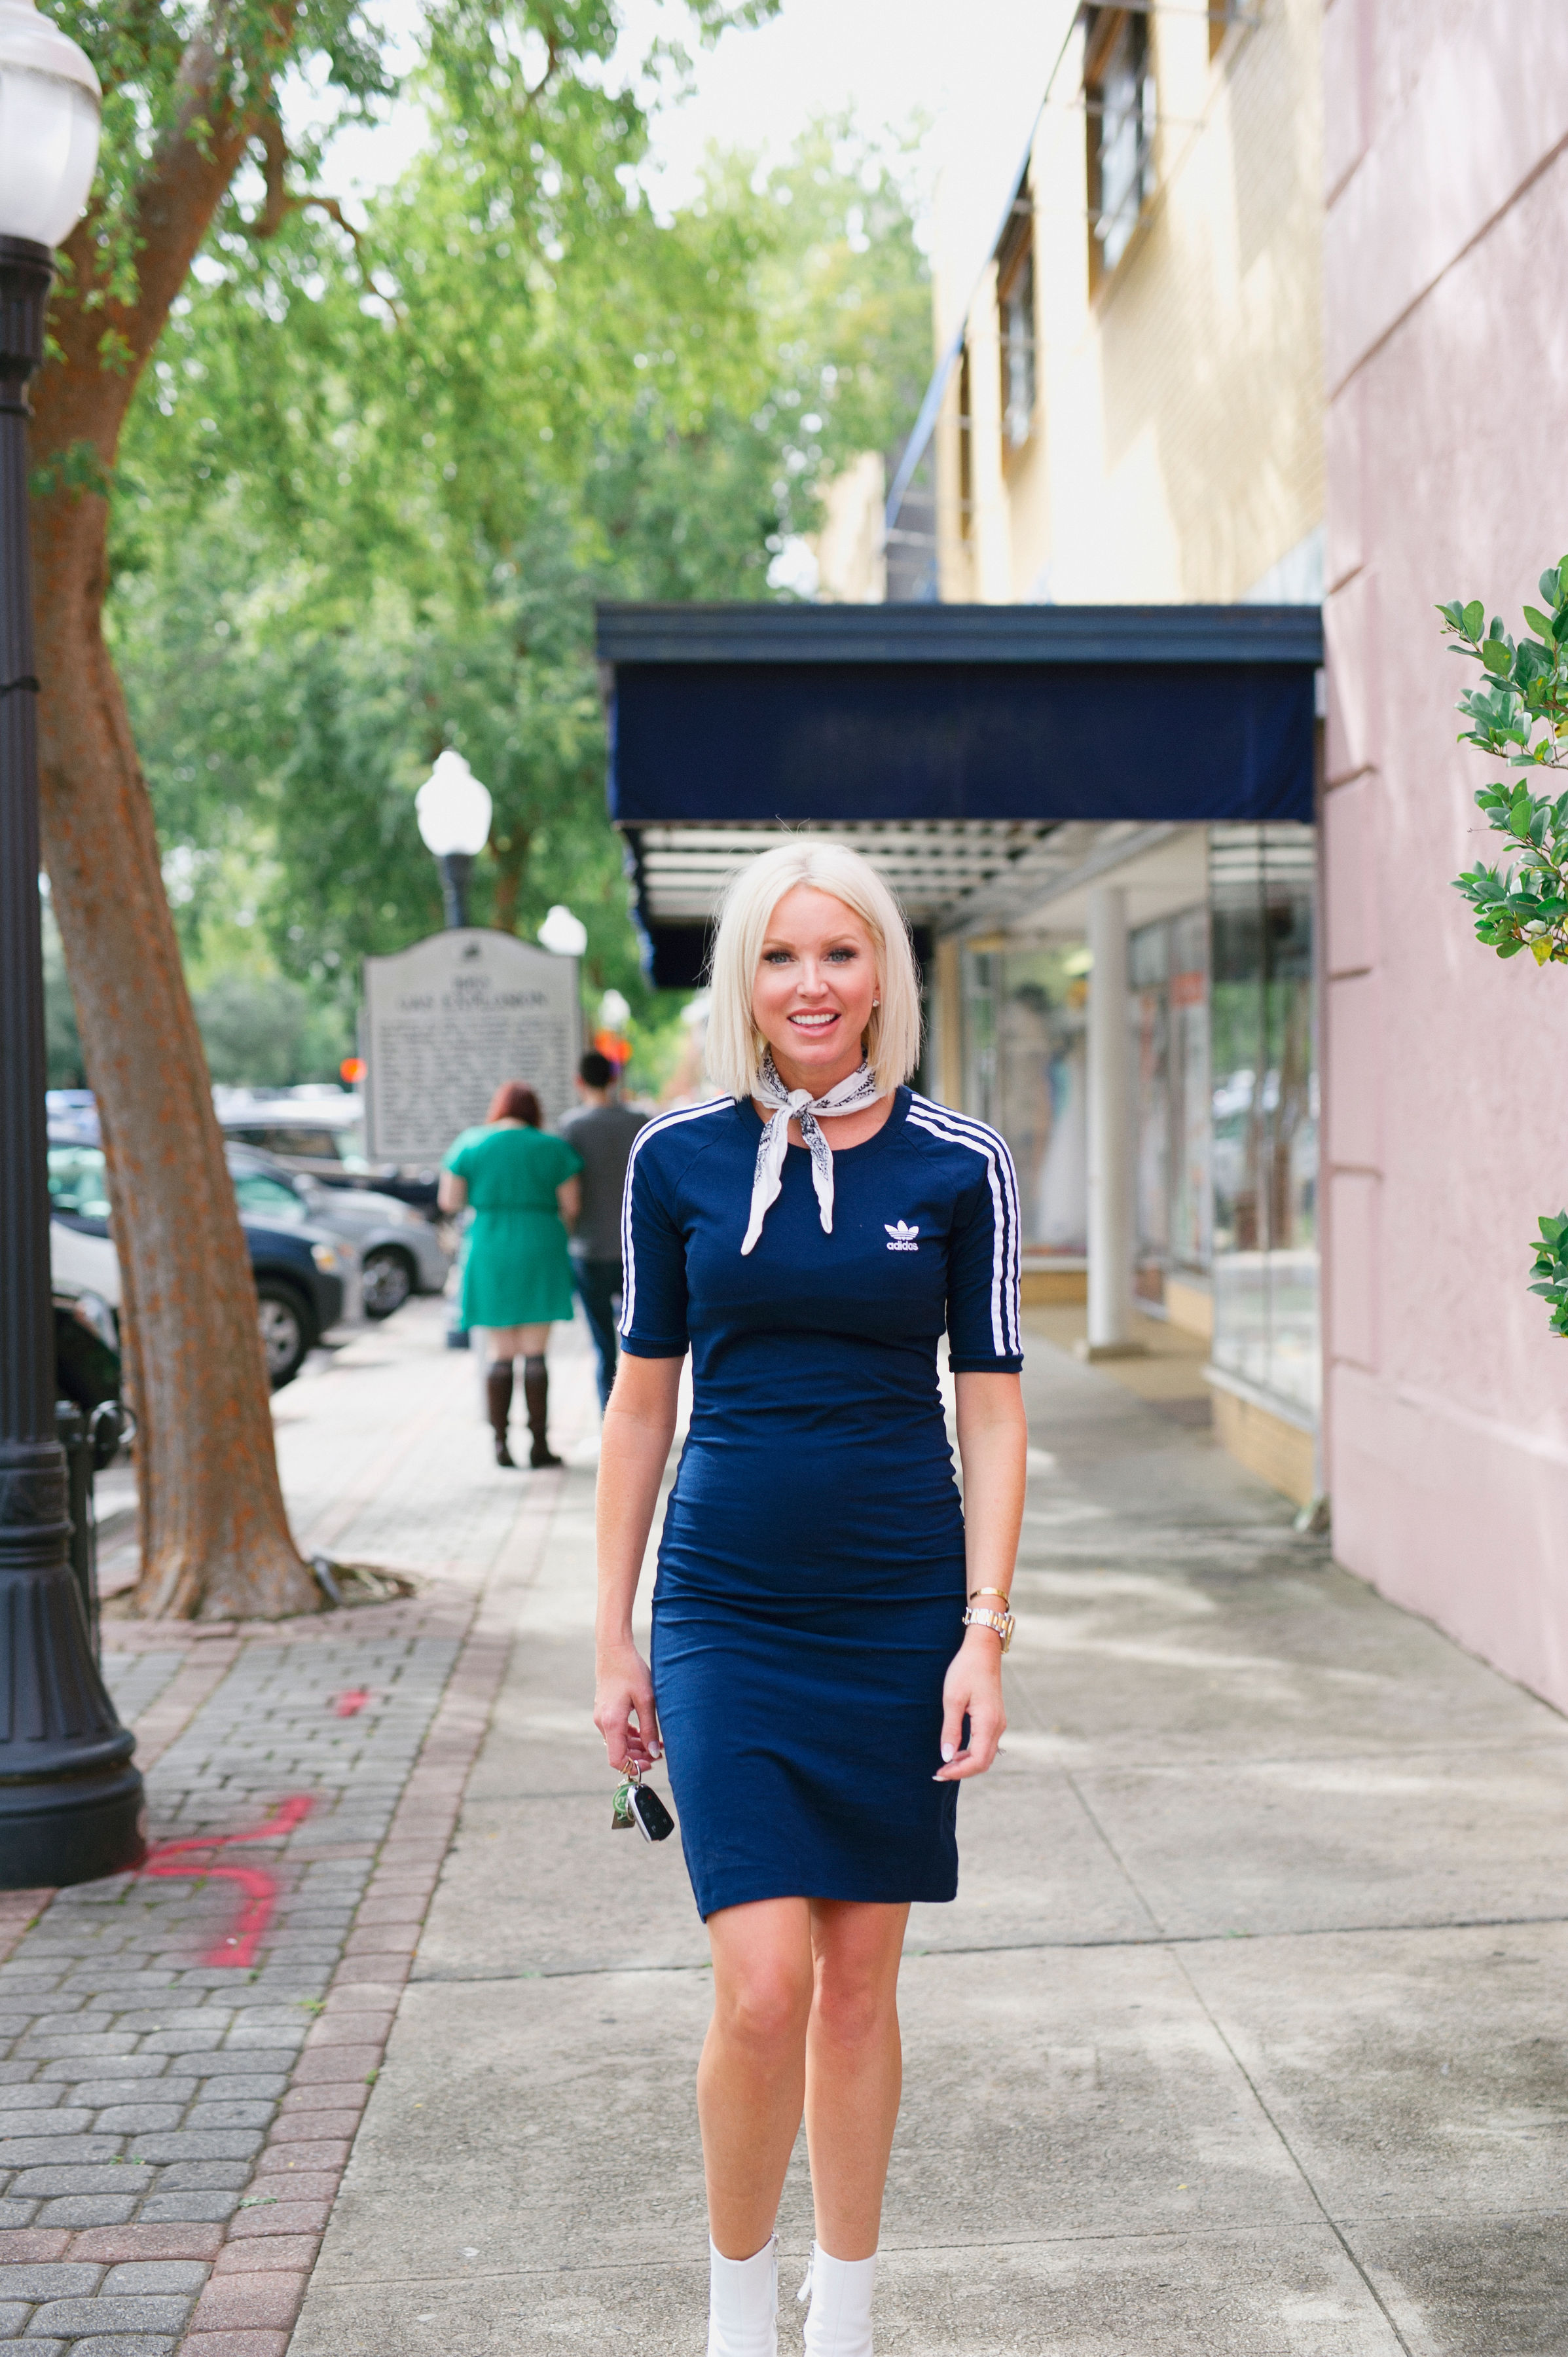 Styling the Adidas dress in a feminine manner was the biggest challenge! - I almost feel like this entire lewk makes you forget it's an Adidas dress. Here it just feels like a great outfit!Just kind of like…oh HEY GIRL!